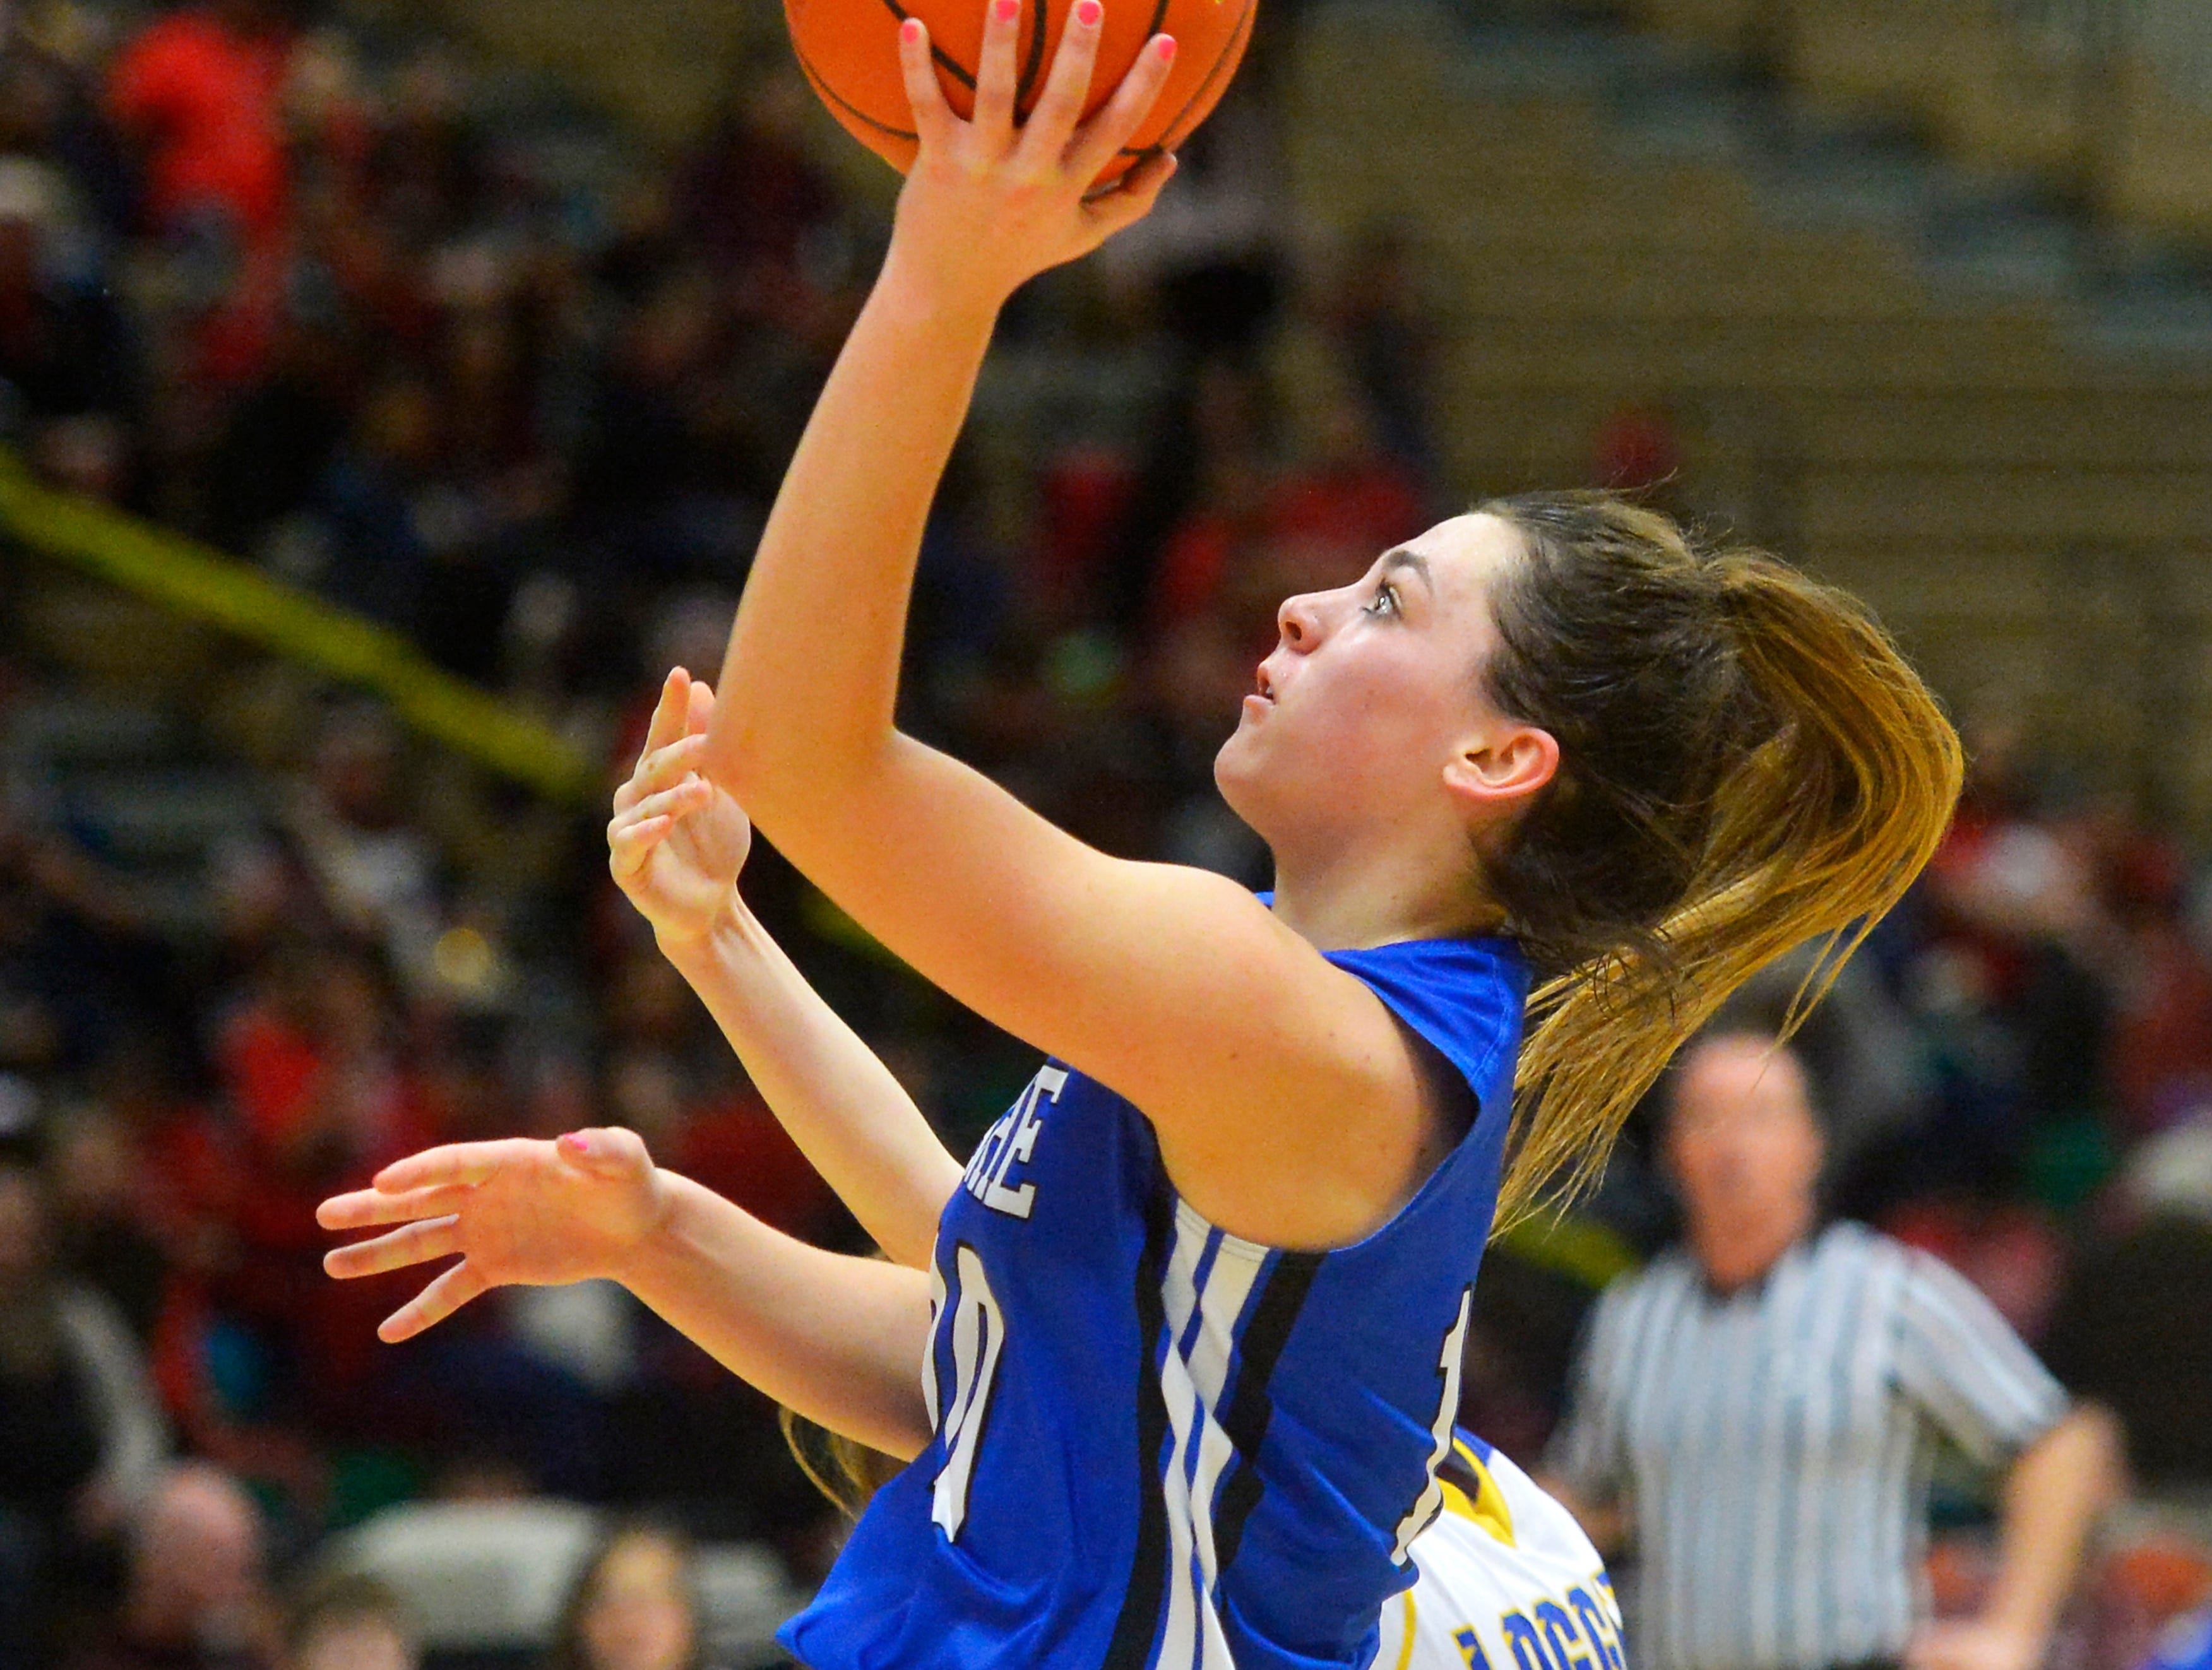 Havre's Kyndall Keller shoots a layup in Thursday's game against Libby at the Class A State Basketball Tournament in the Four Seasons Arena, Thursday.